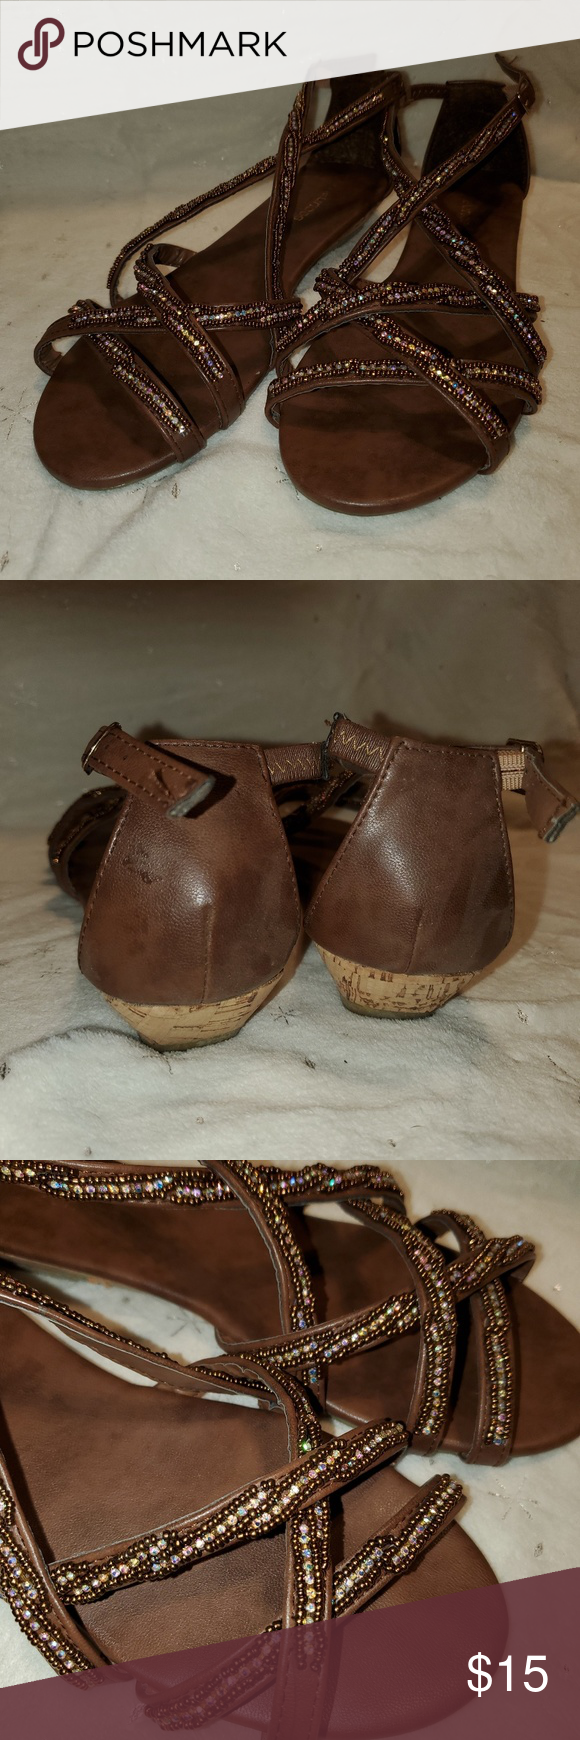 Low Wedge Sandals Brown with beaded straps. Low wedge, 1 heel. Great condition! Maurices Shoes Wedges #lowwedgesandals Low Wedge Sandals Brown with beaded straps. Low wedge, 1 heel. Great condition! Maurices Shoes Wedges #lowwedgesandals